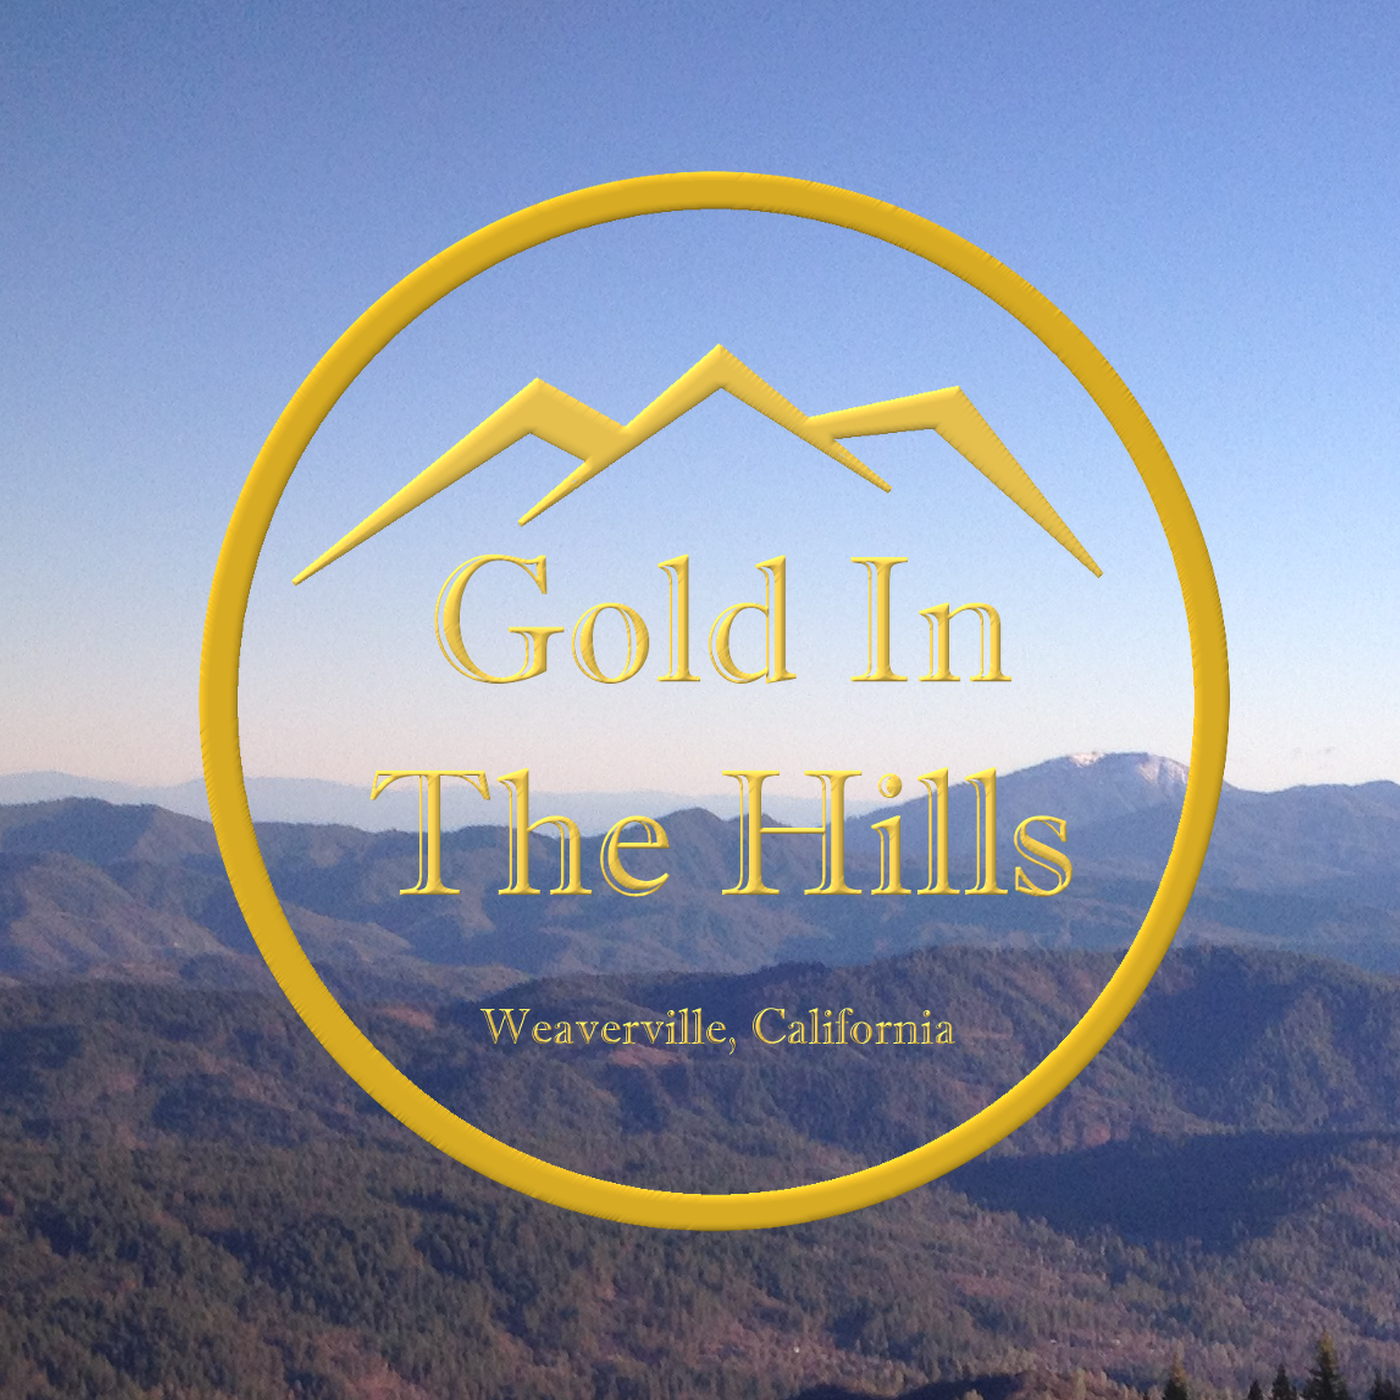 Gold in the Hills - Gracenotes and Footnotes